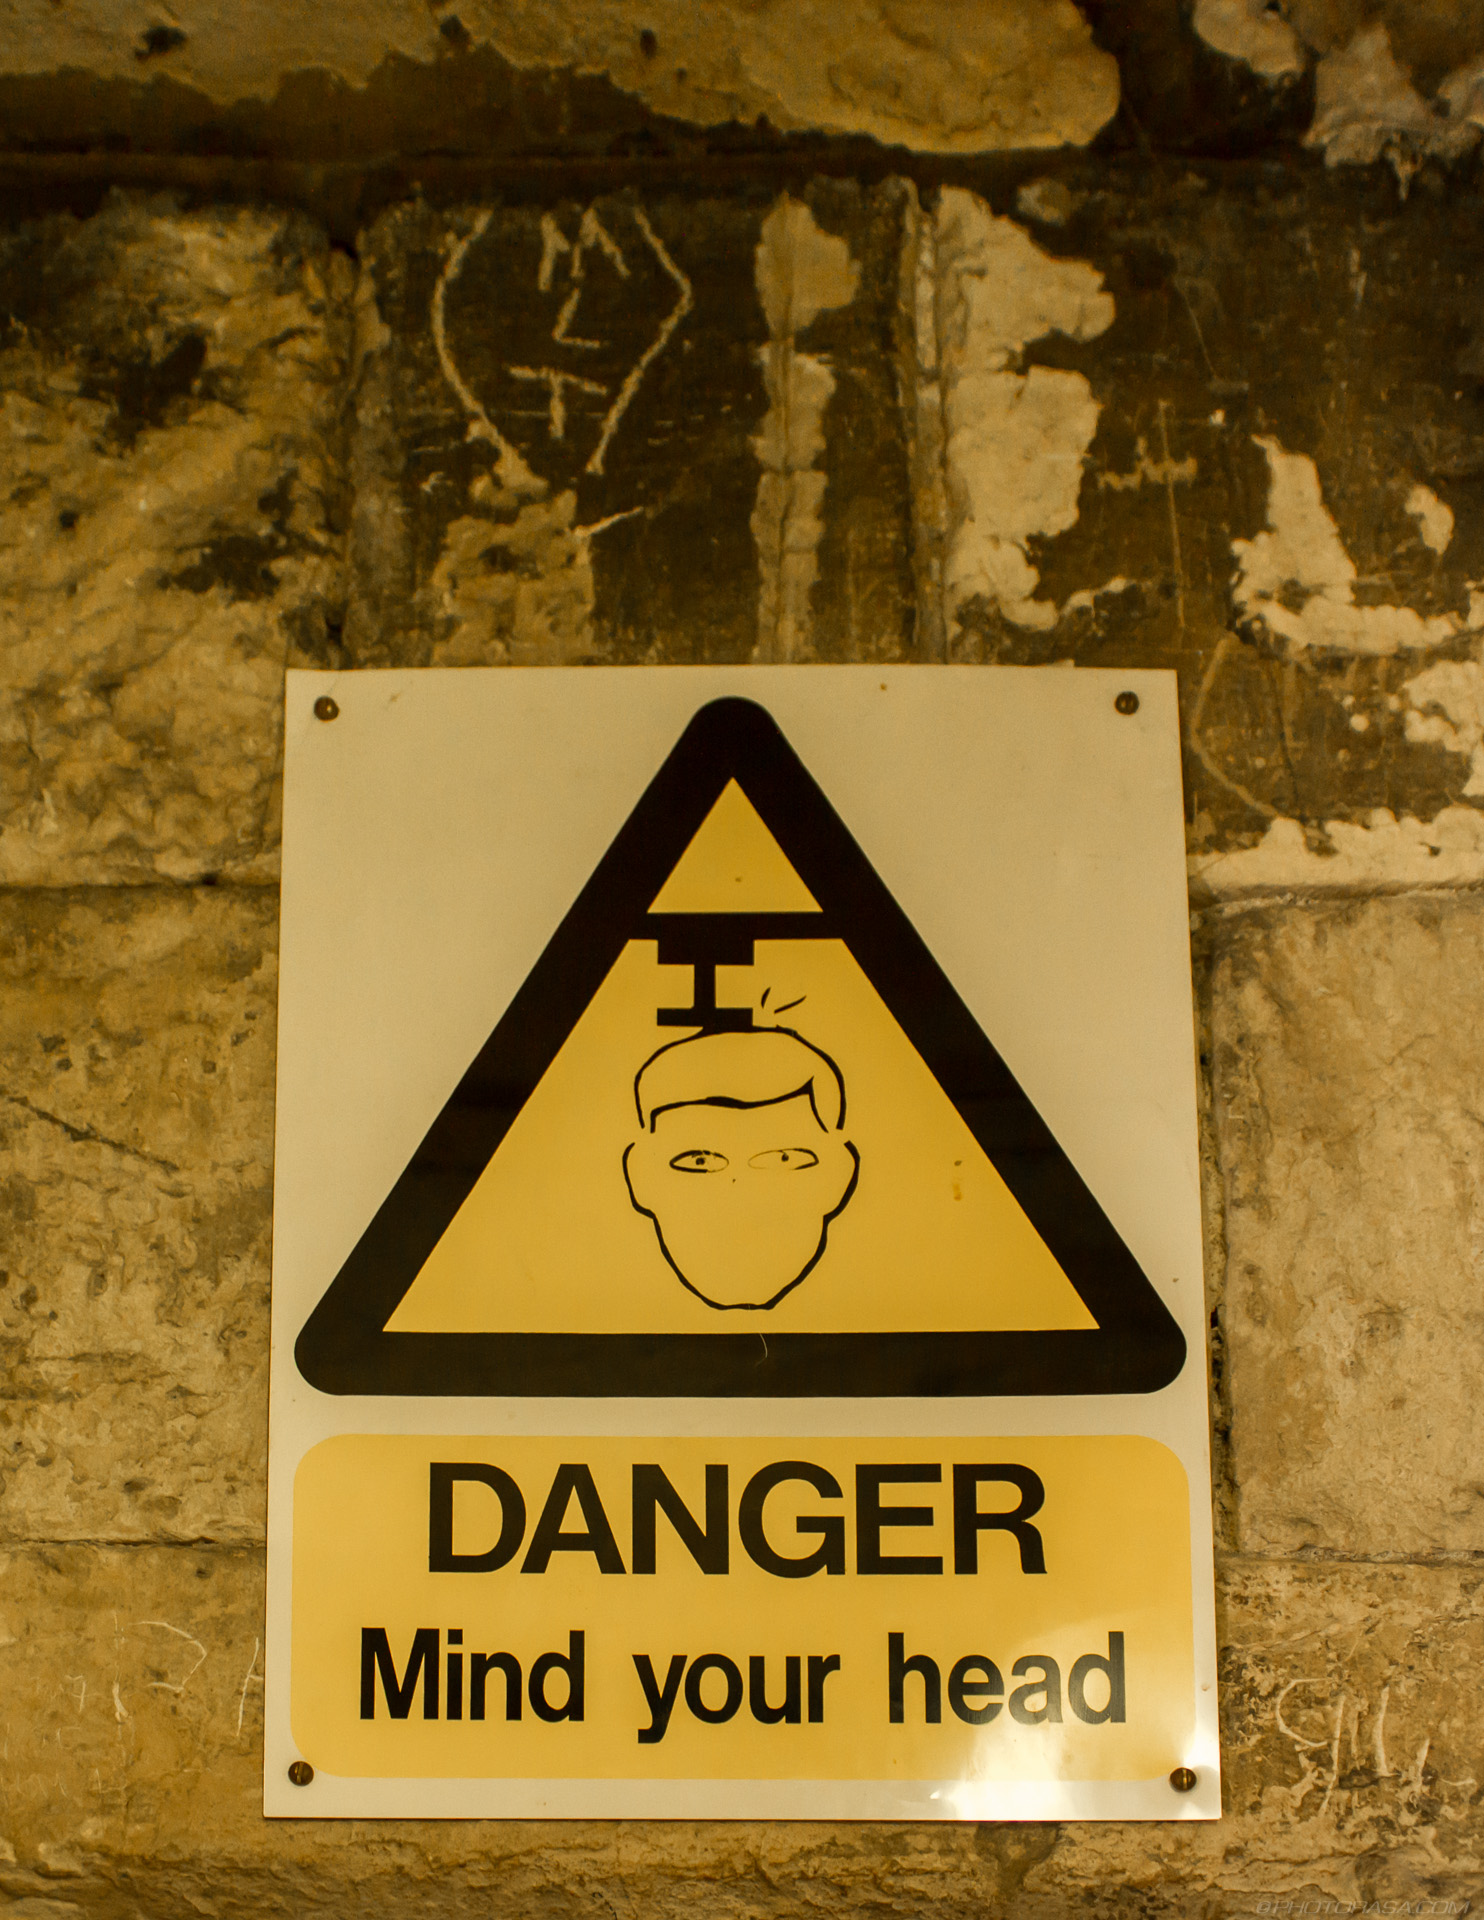 http://photorasa.com/places/yorkminster-cathedral/attachment/danger-mind-your-head-warning-sign/